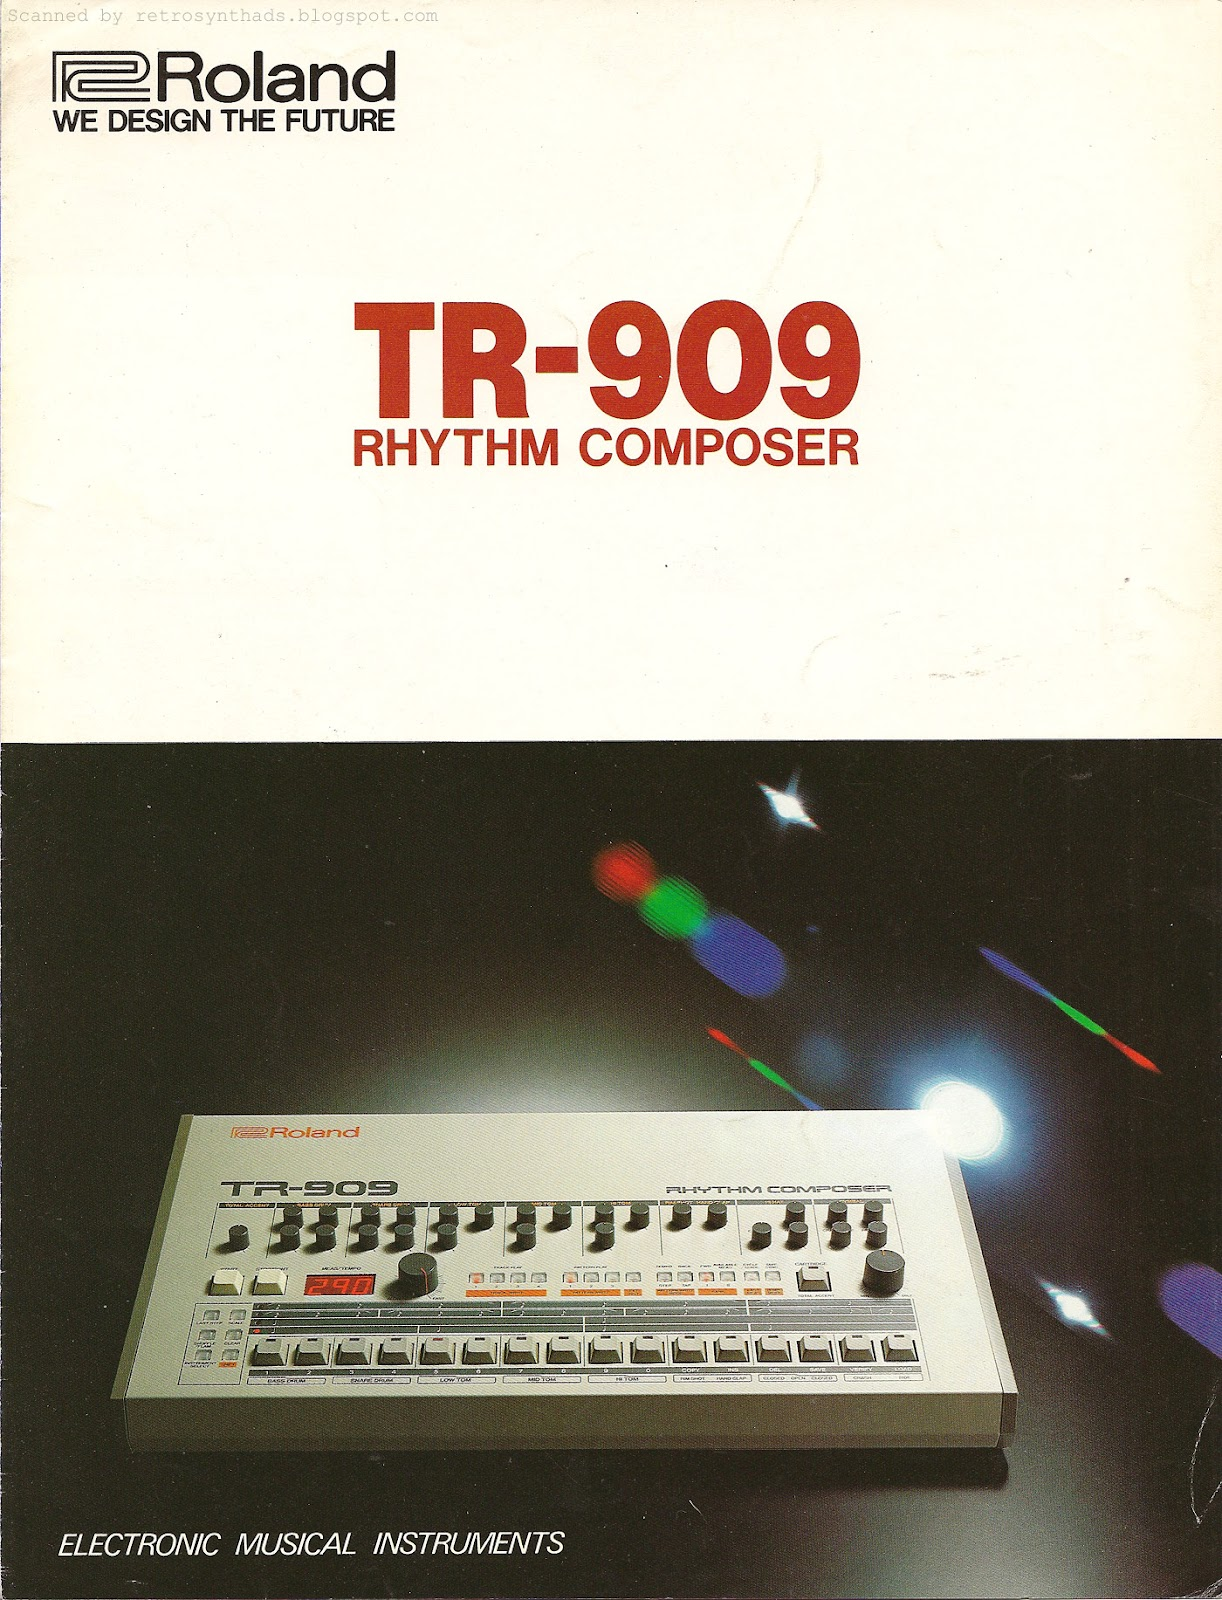 http://retrosynthads.blogspot.ca/2012/08/roland-tr-909-drum-machine-four-page.html